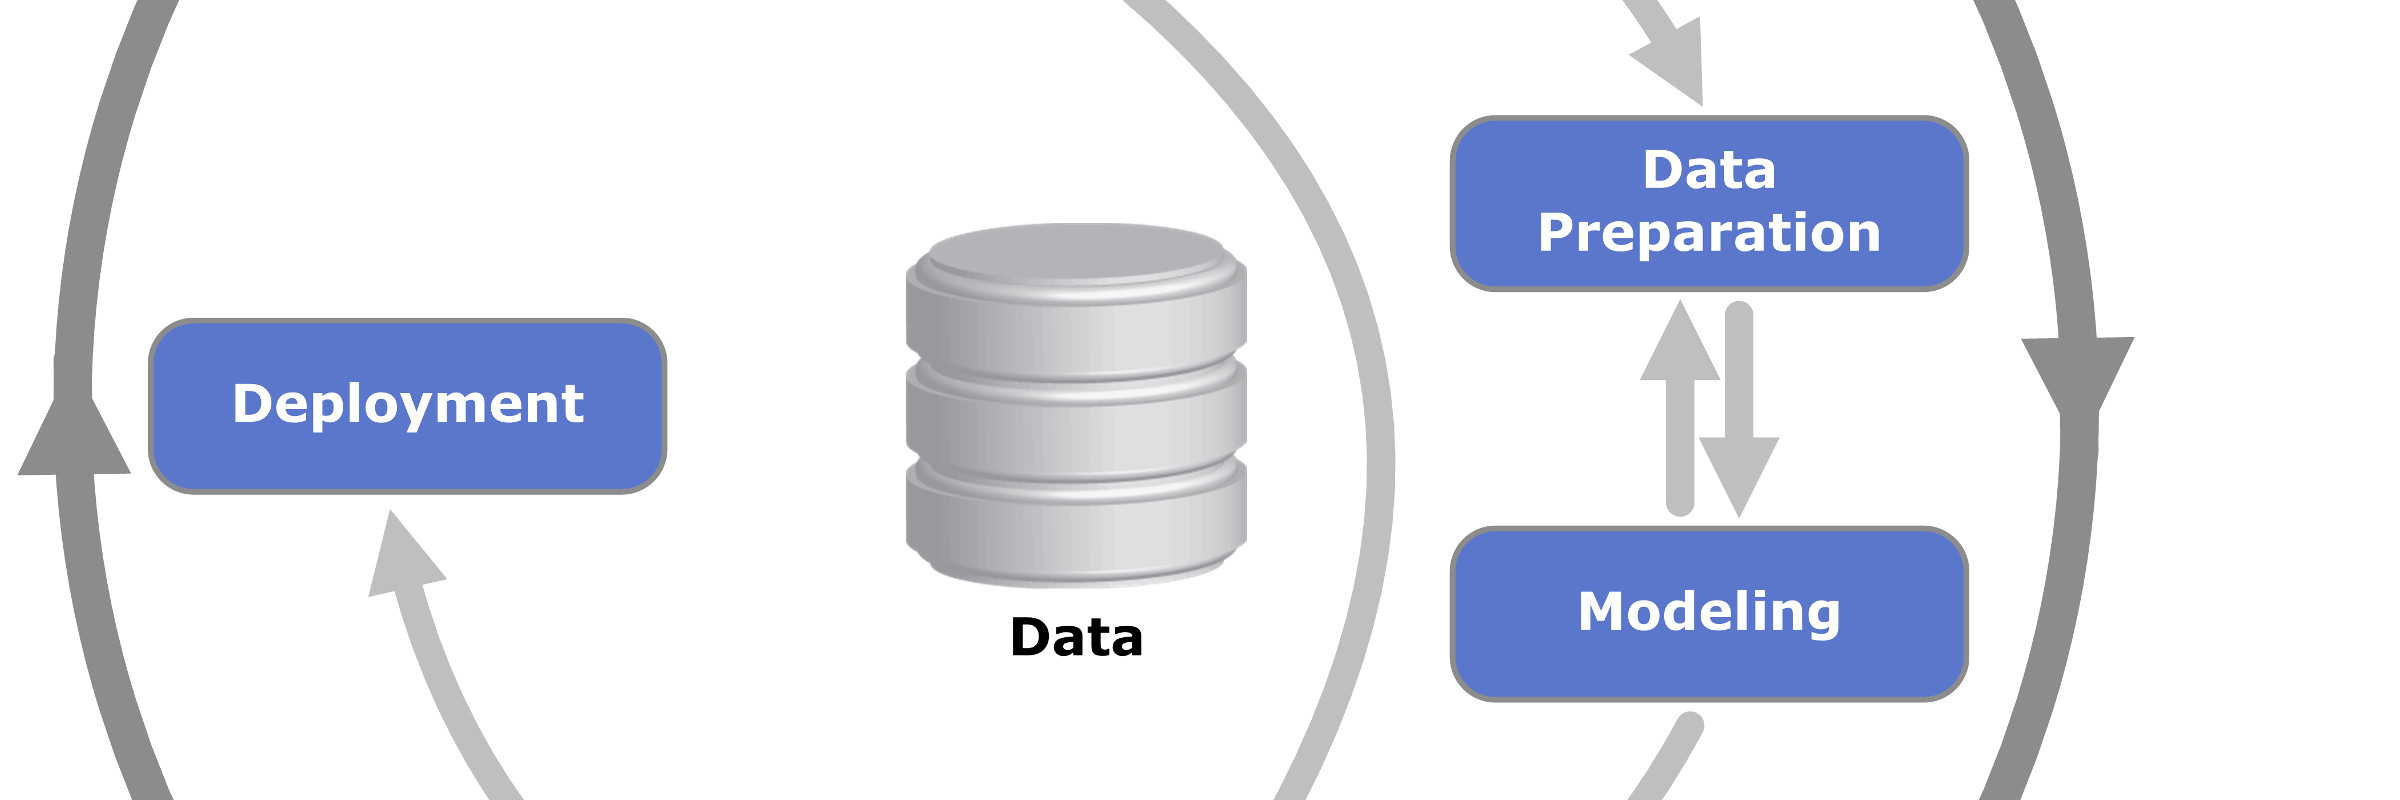 How to Plan an Agile Data Science Project